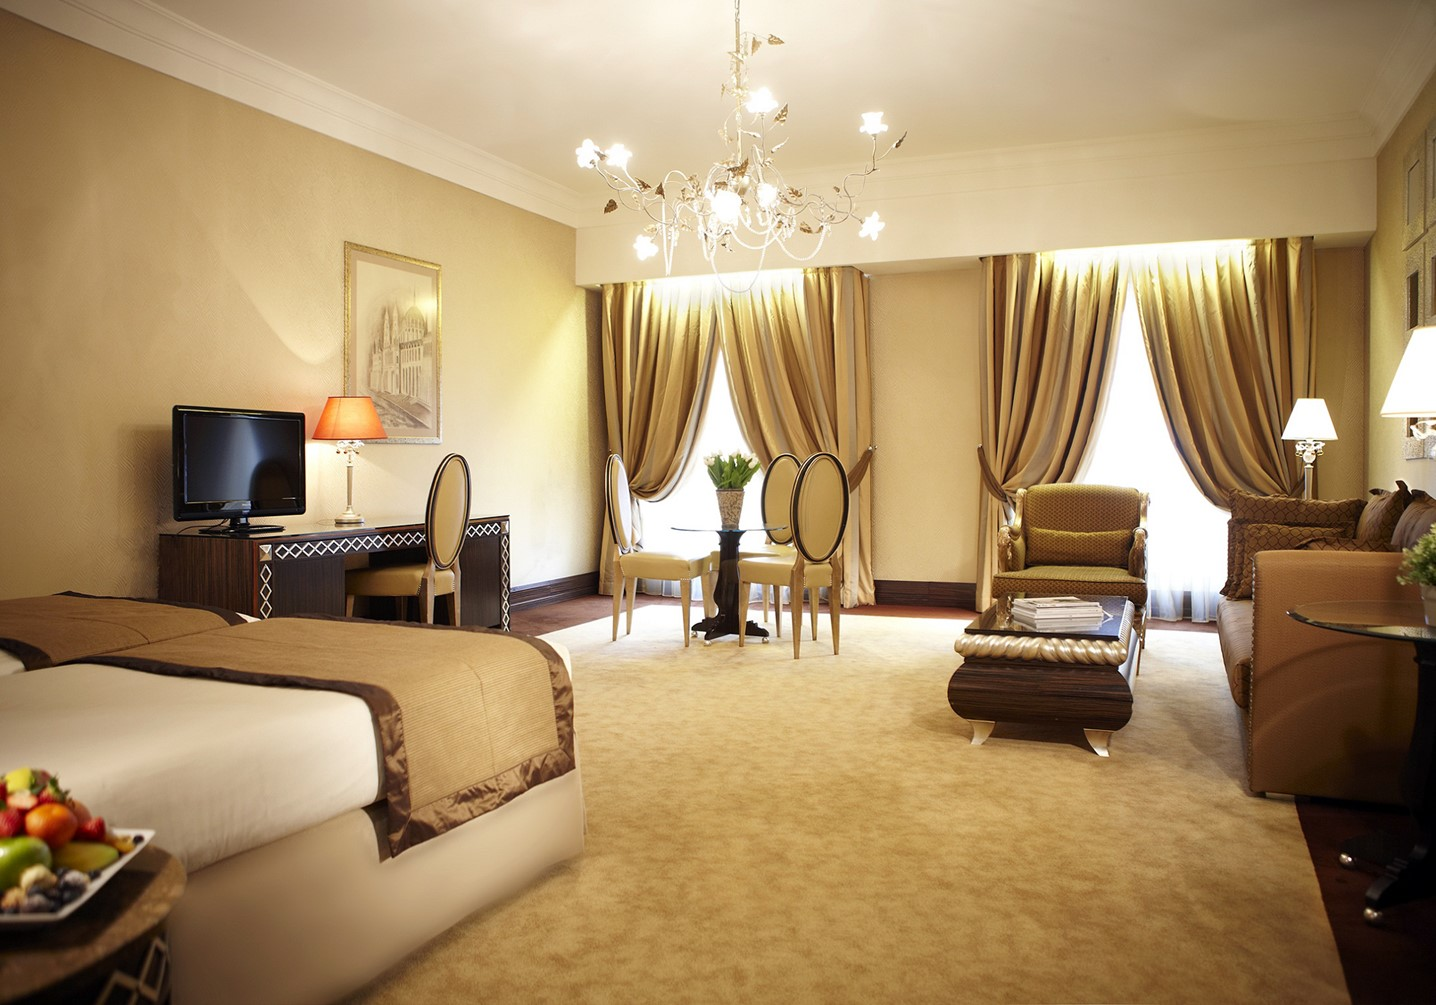 budapest chat rooms Book budapest accommodation in one room find budapest apartment for one person don't stay in hotel room but choose a private room.